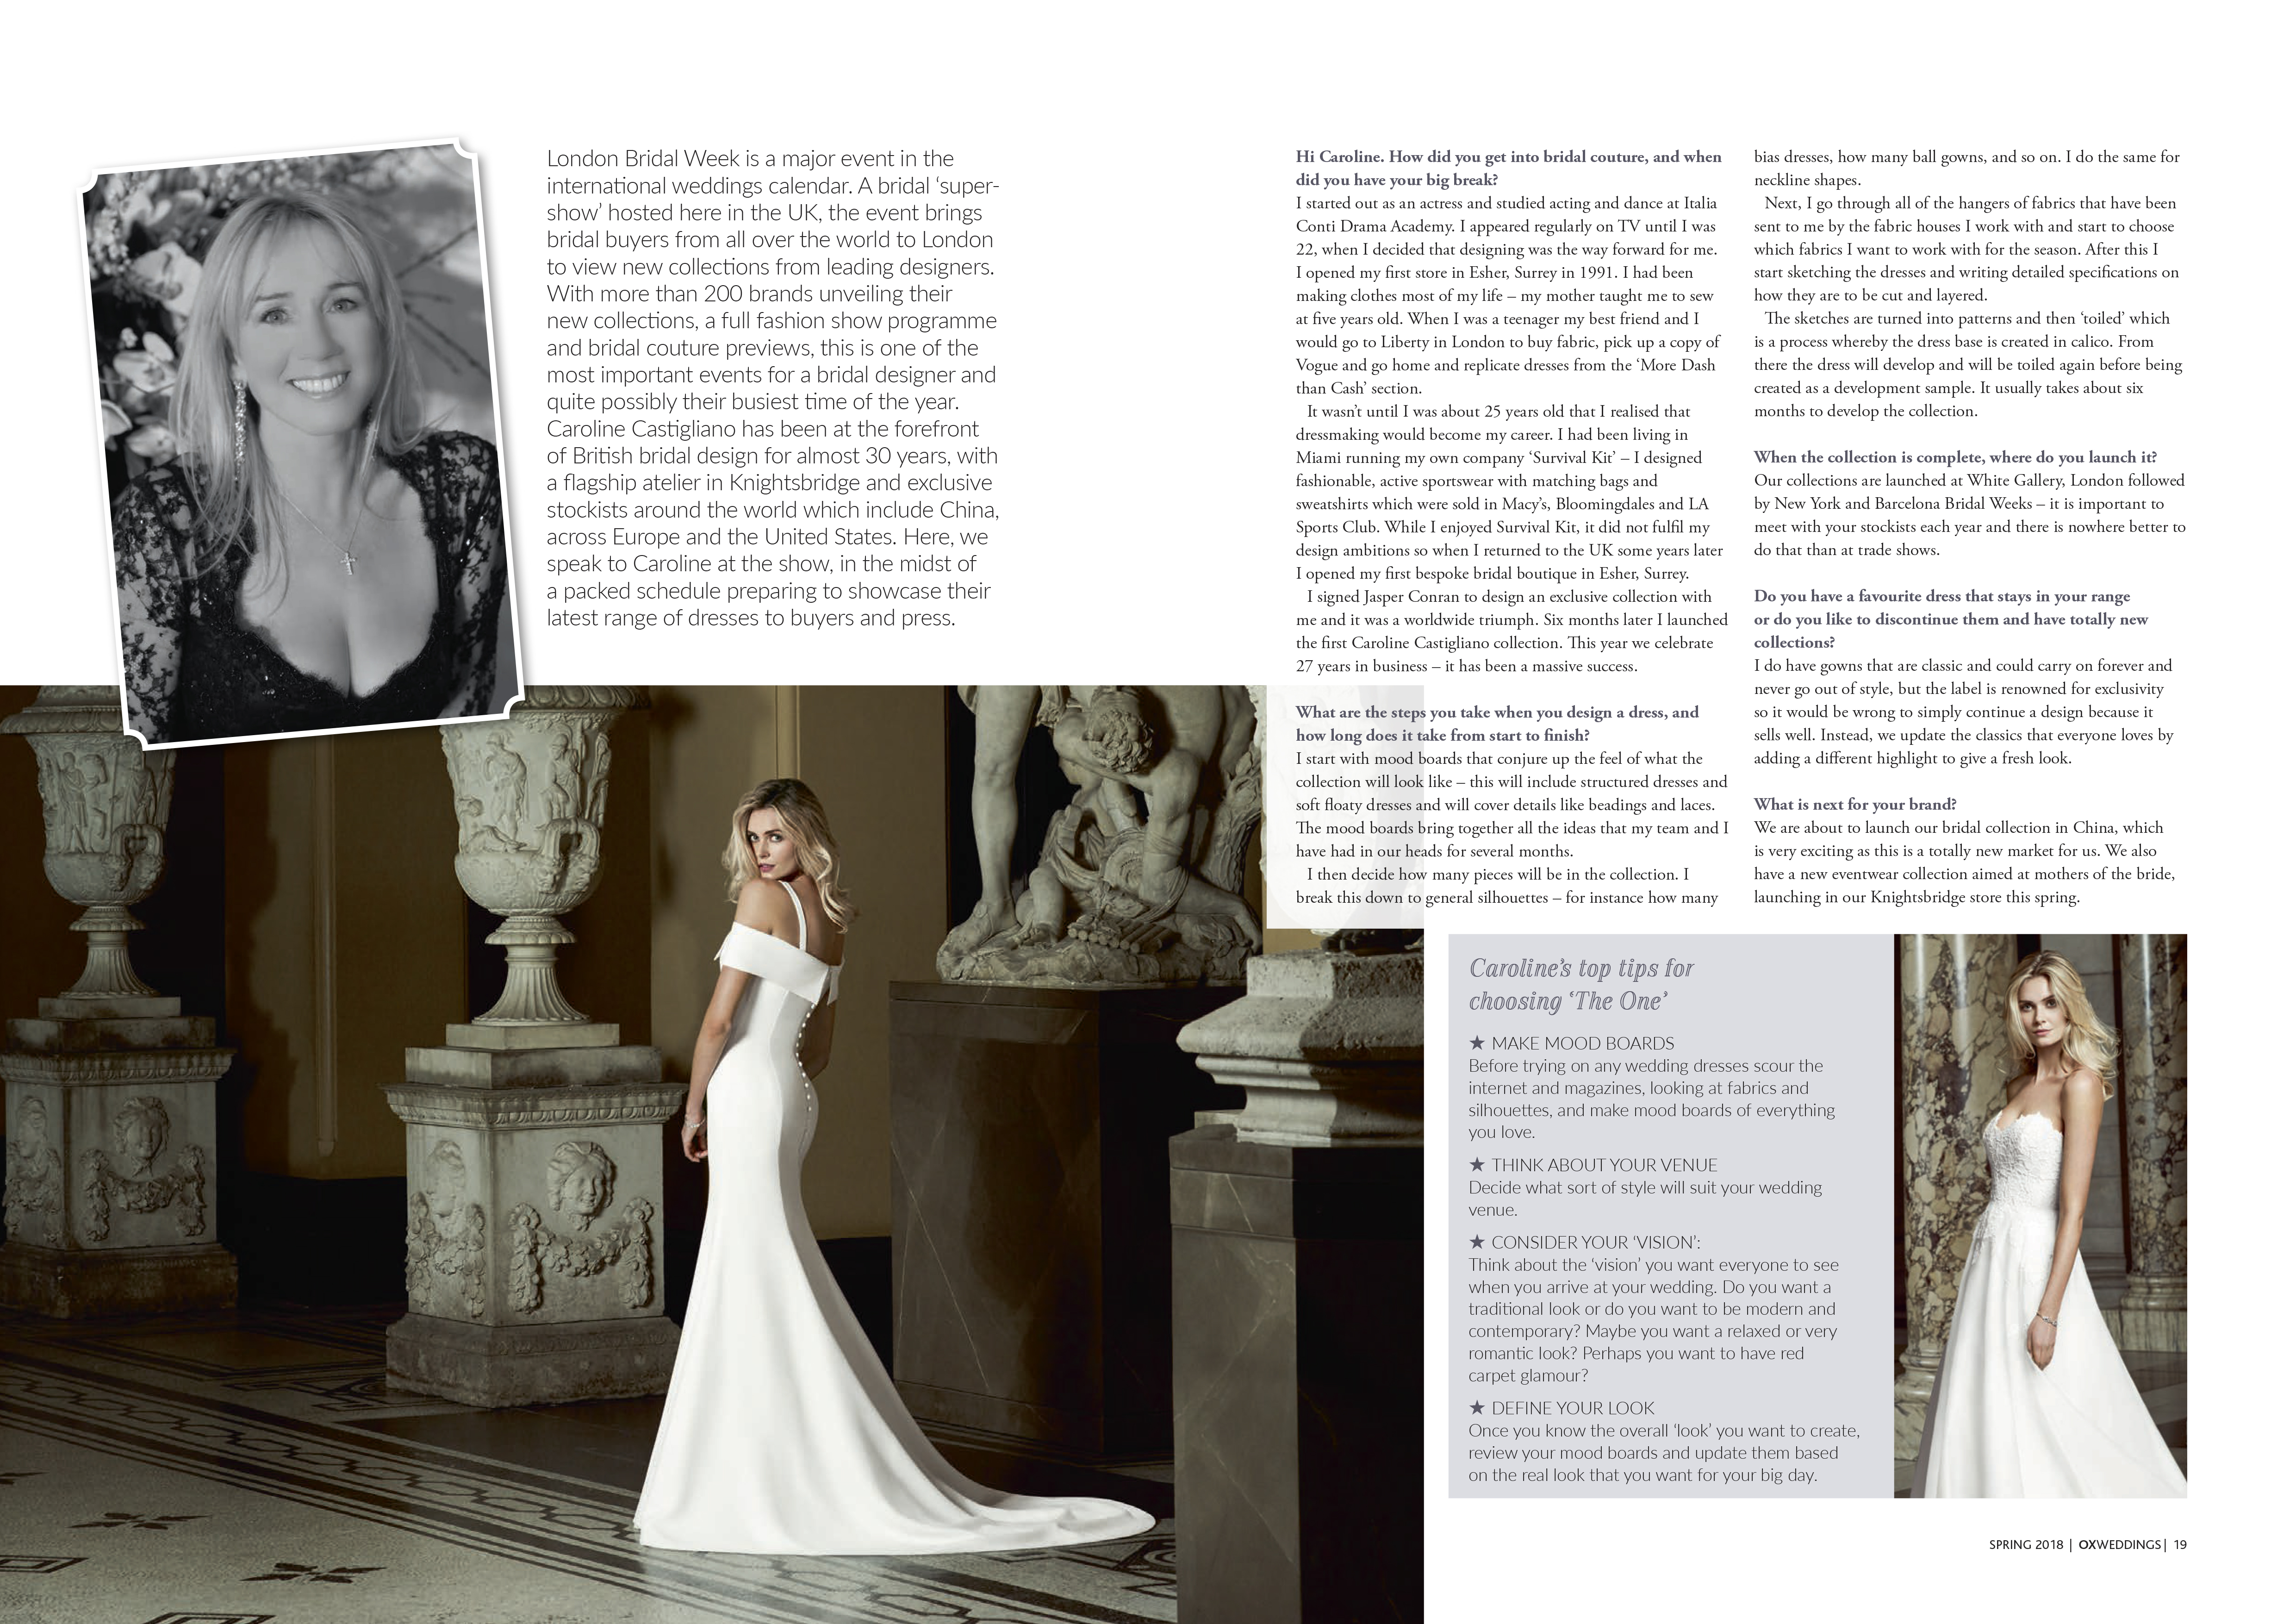 Luxury bridal wear by Caroline Castigliano